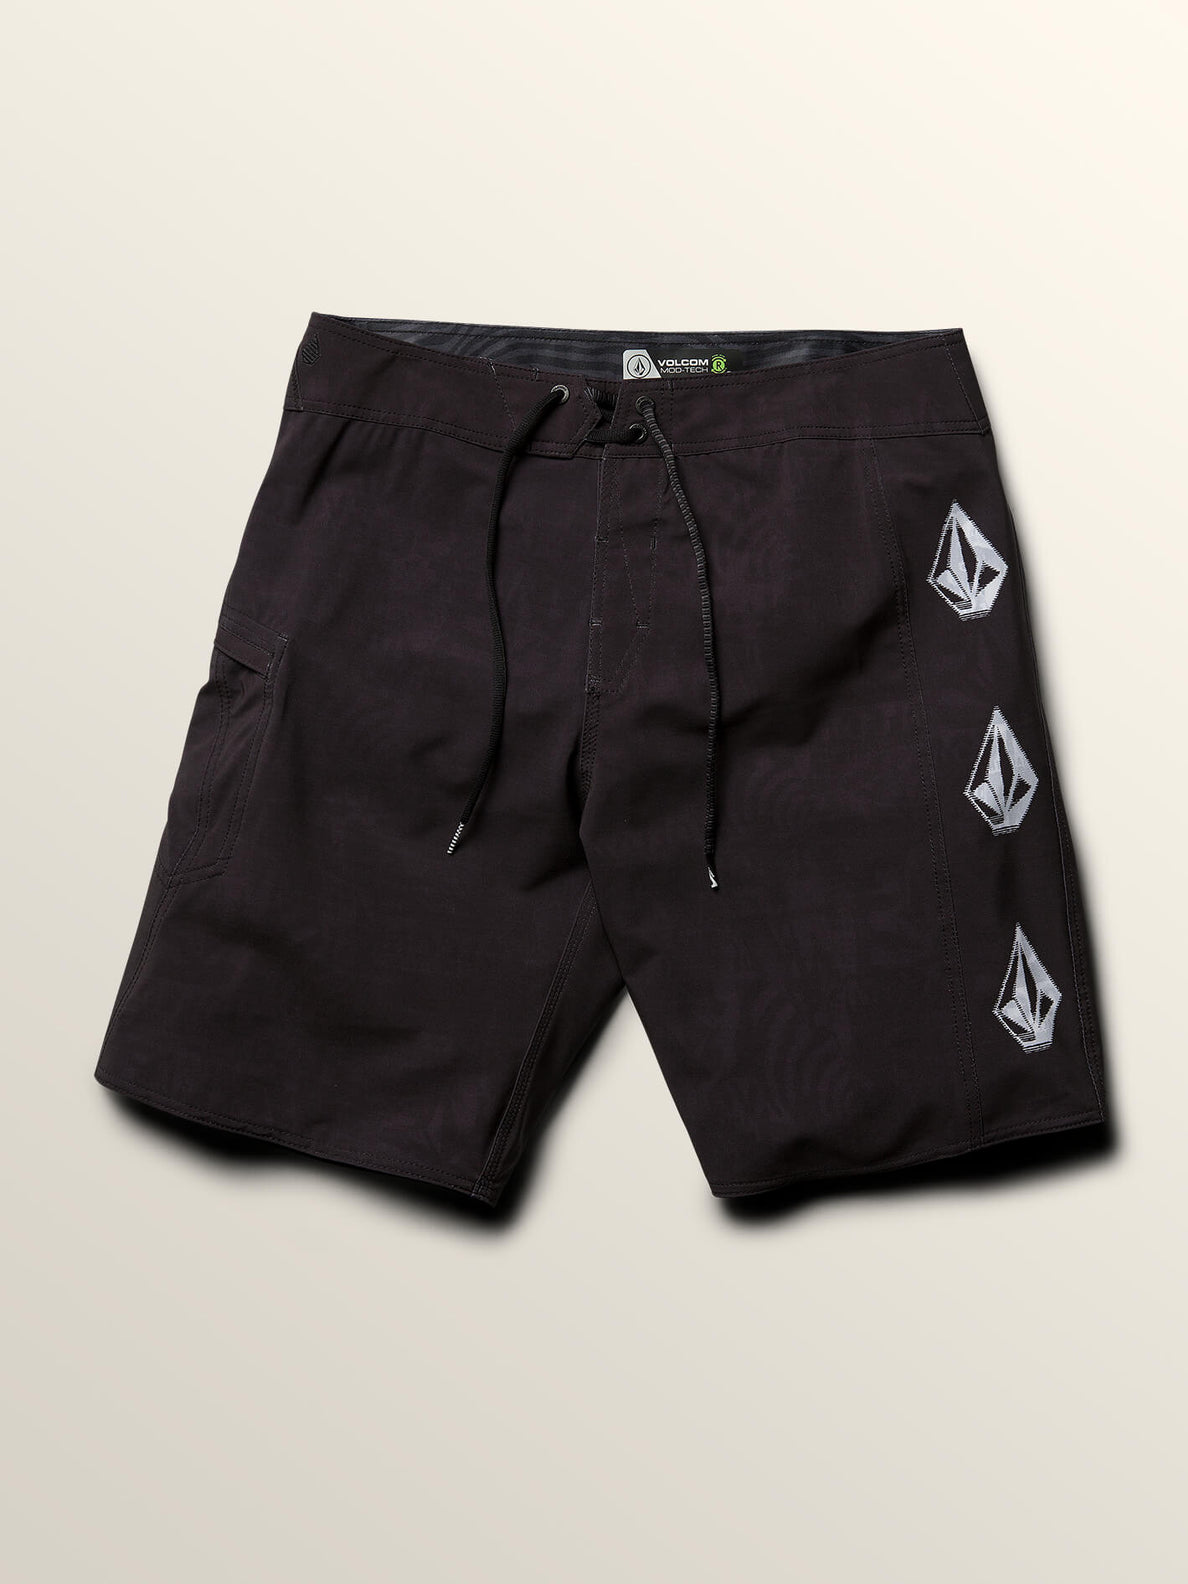 Deadly Stones Mod Boardshorts In Black, Third Alternate View